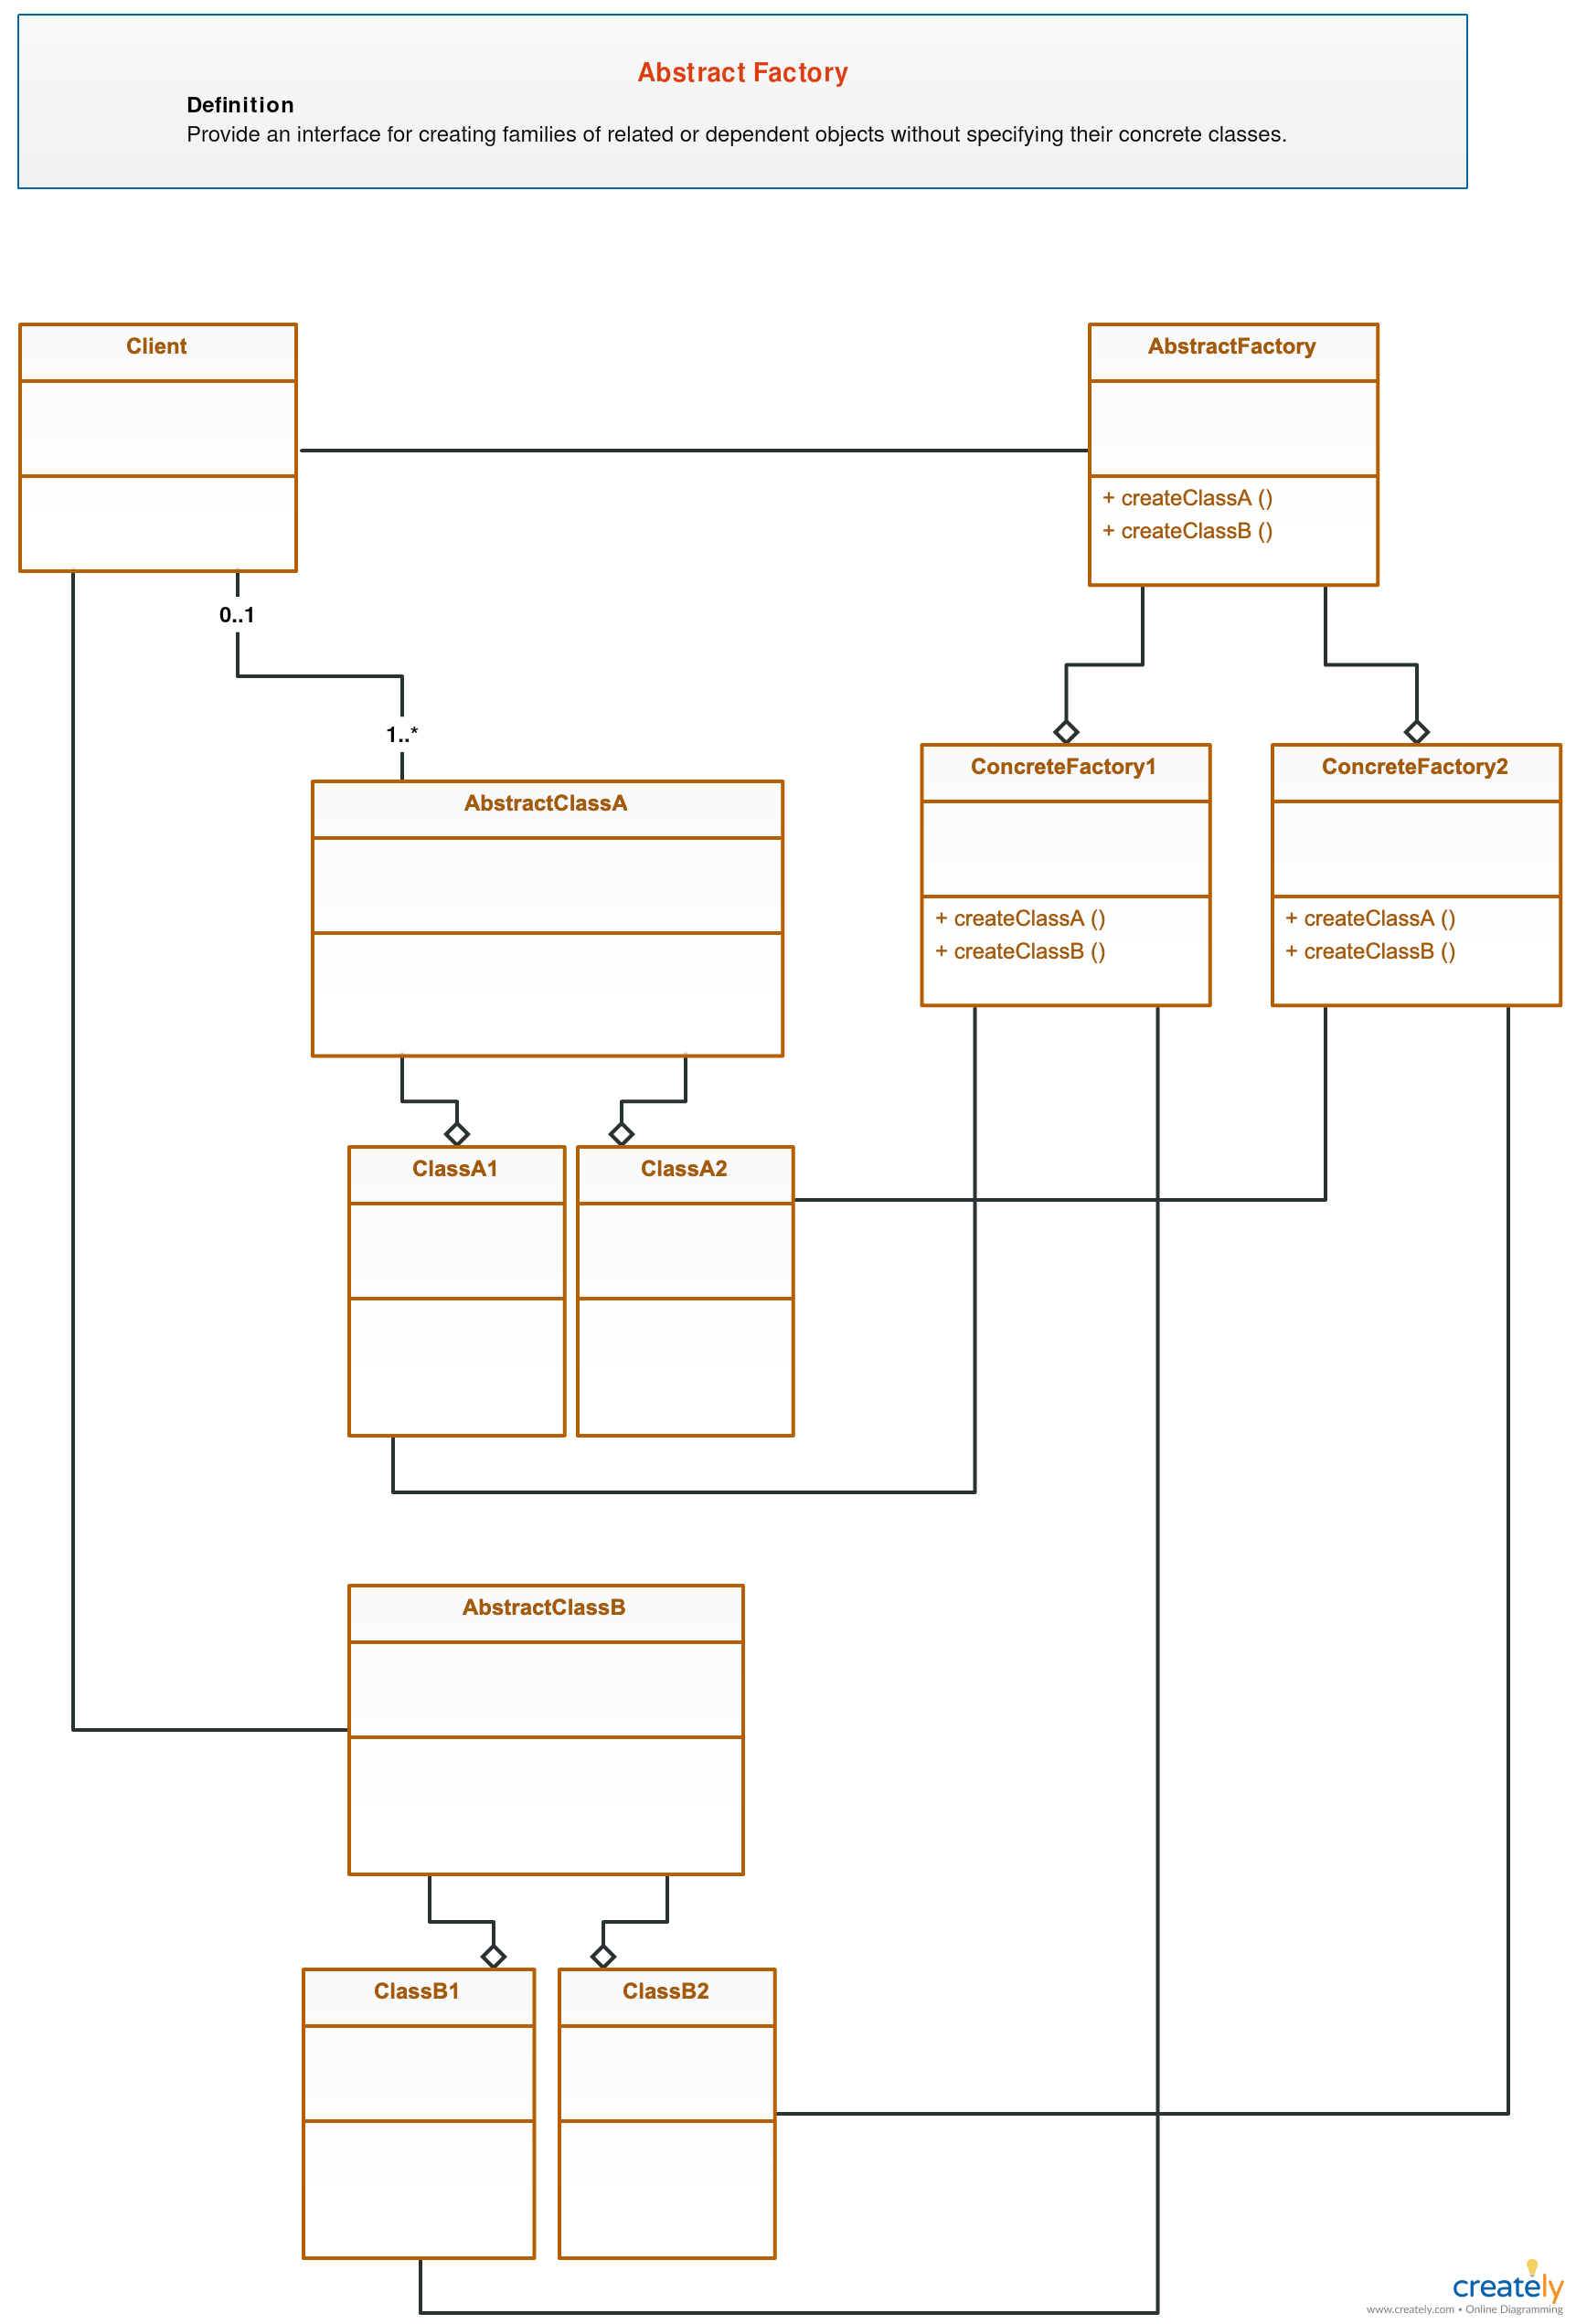 The Ultimate Class Diagram Tutorial to Help Model Your ...